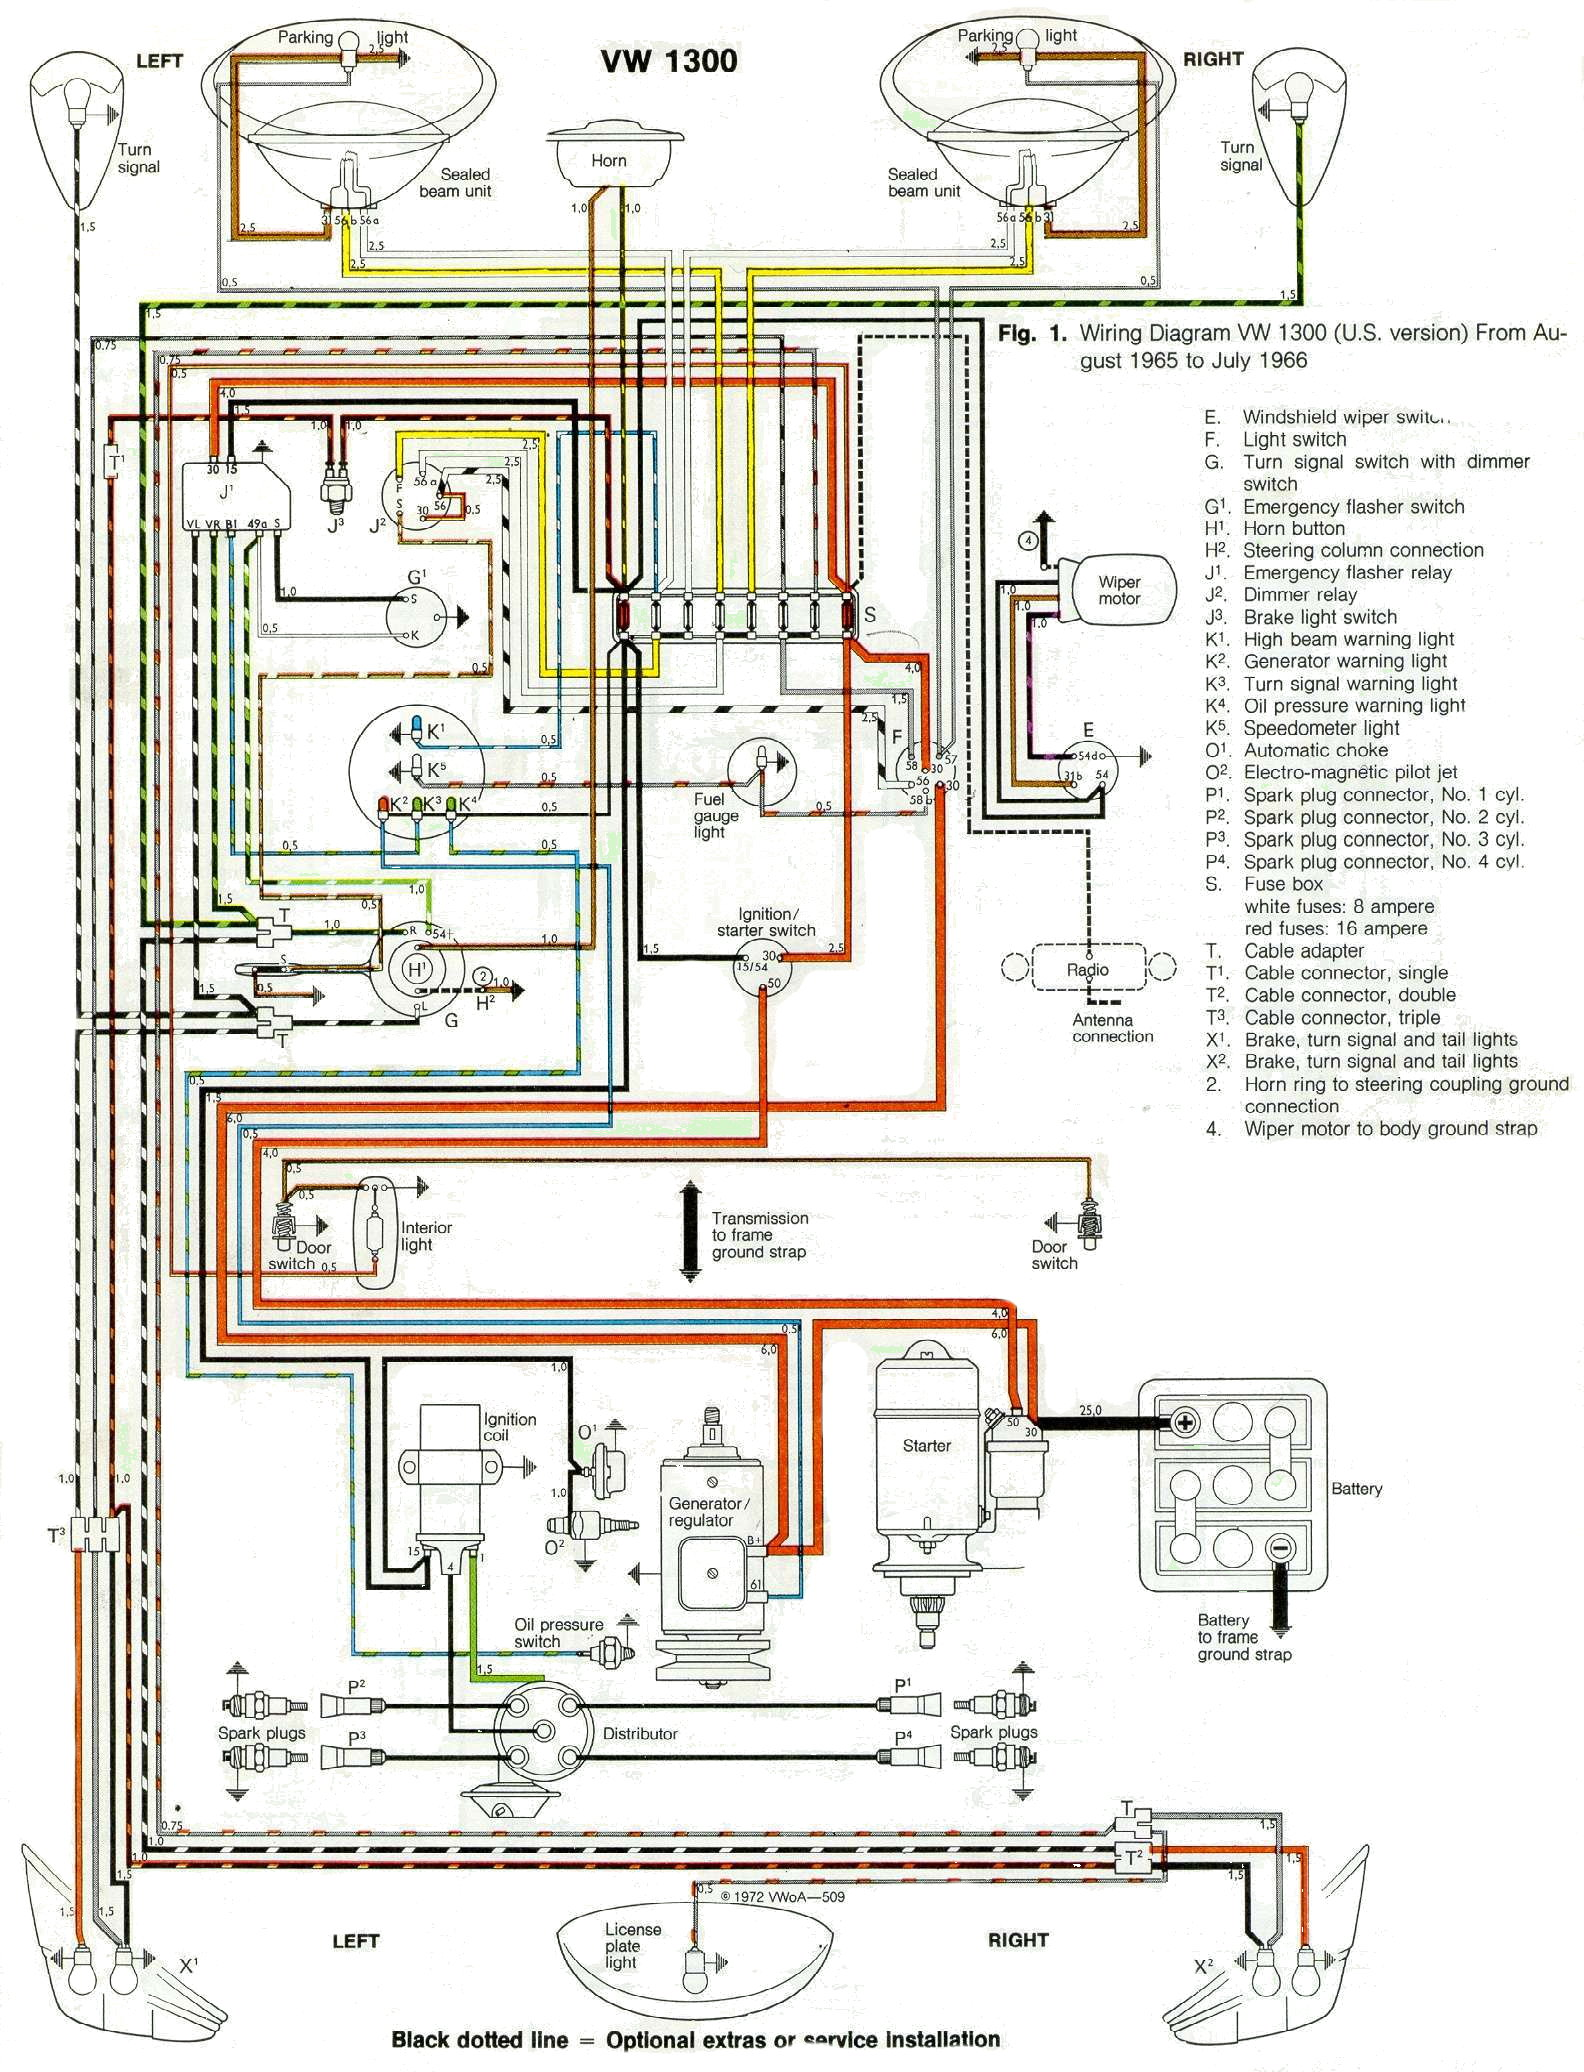 1966 Wiring 1966 wiring diagram vw beetle wiring diagram at mr168.co